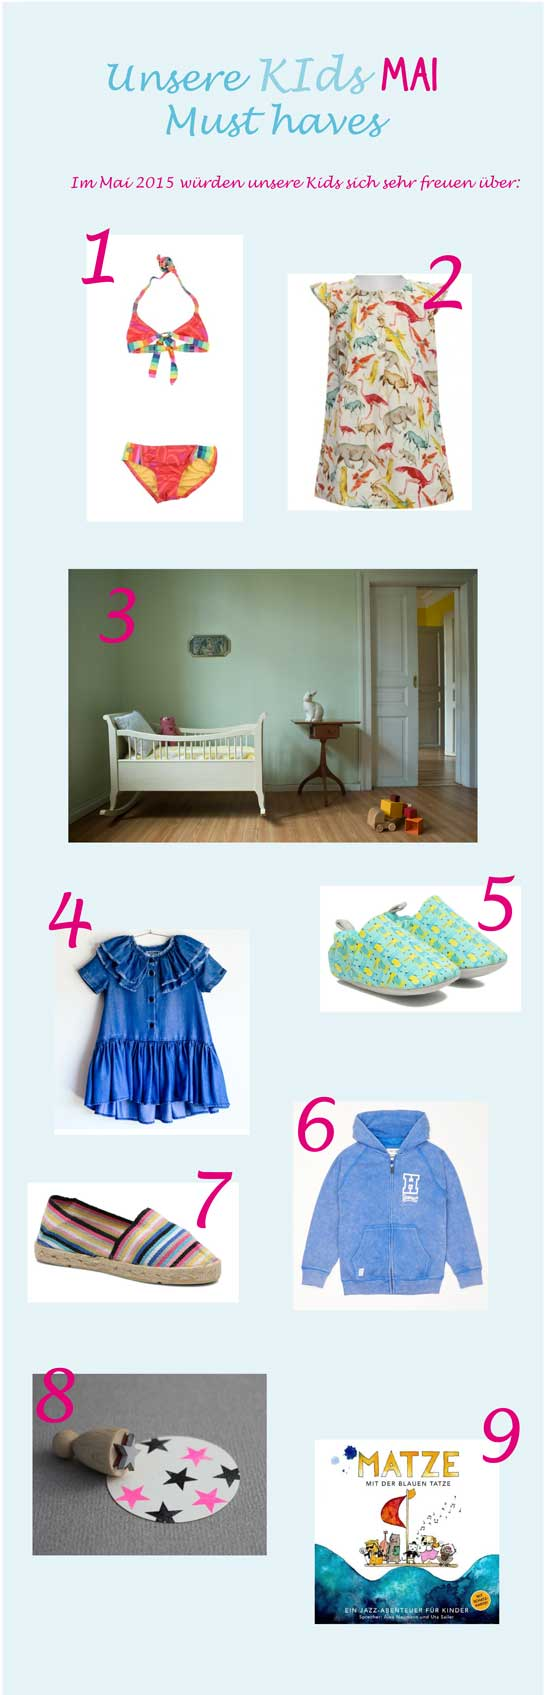 Kids-Mai-Must-haves-2015